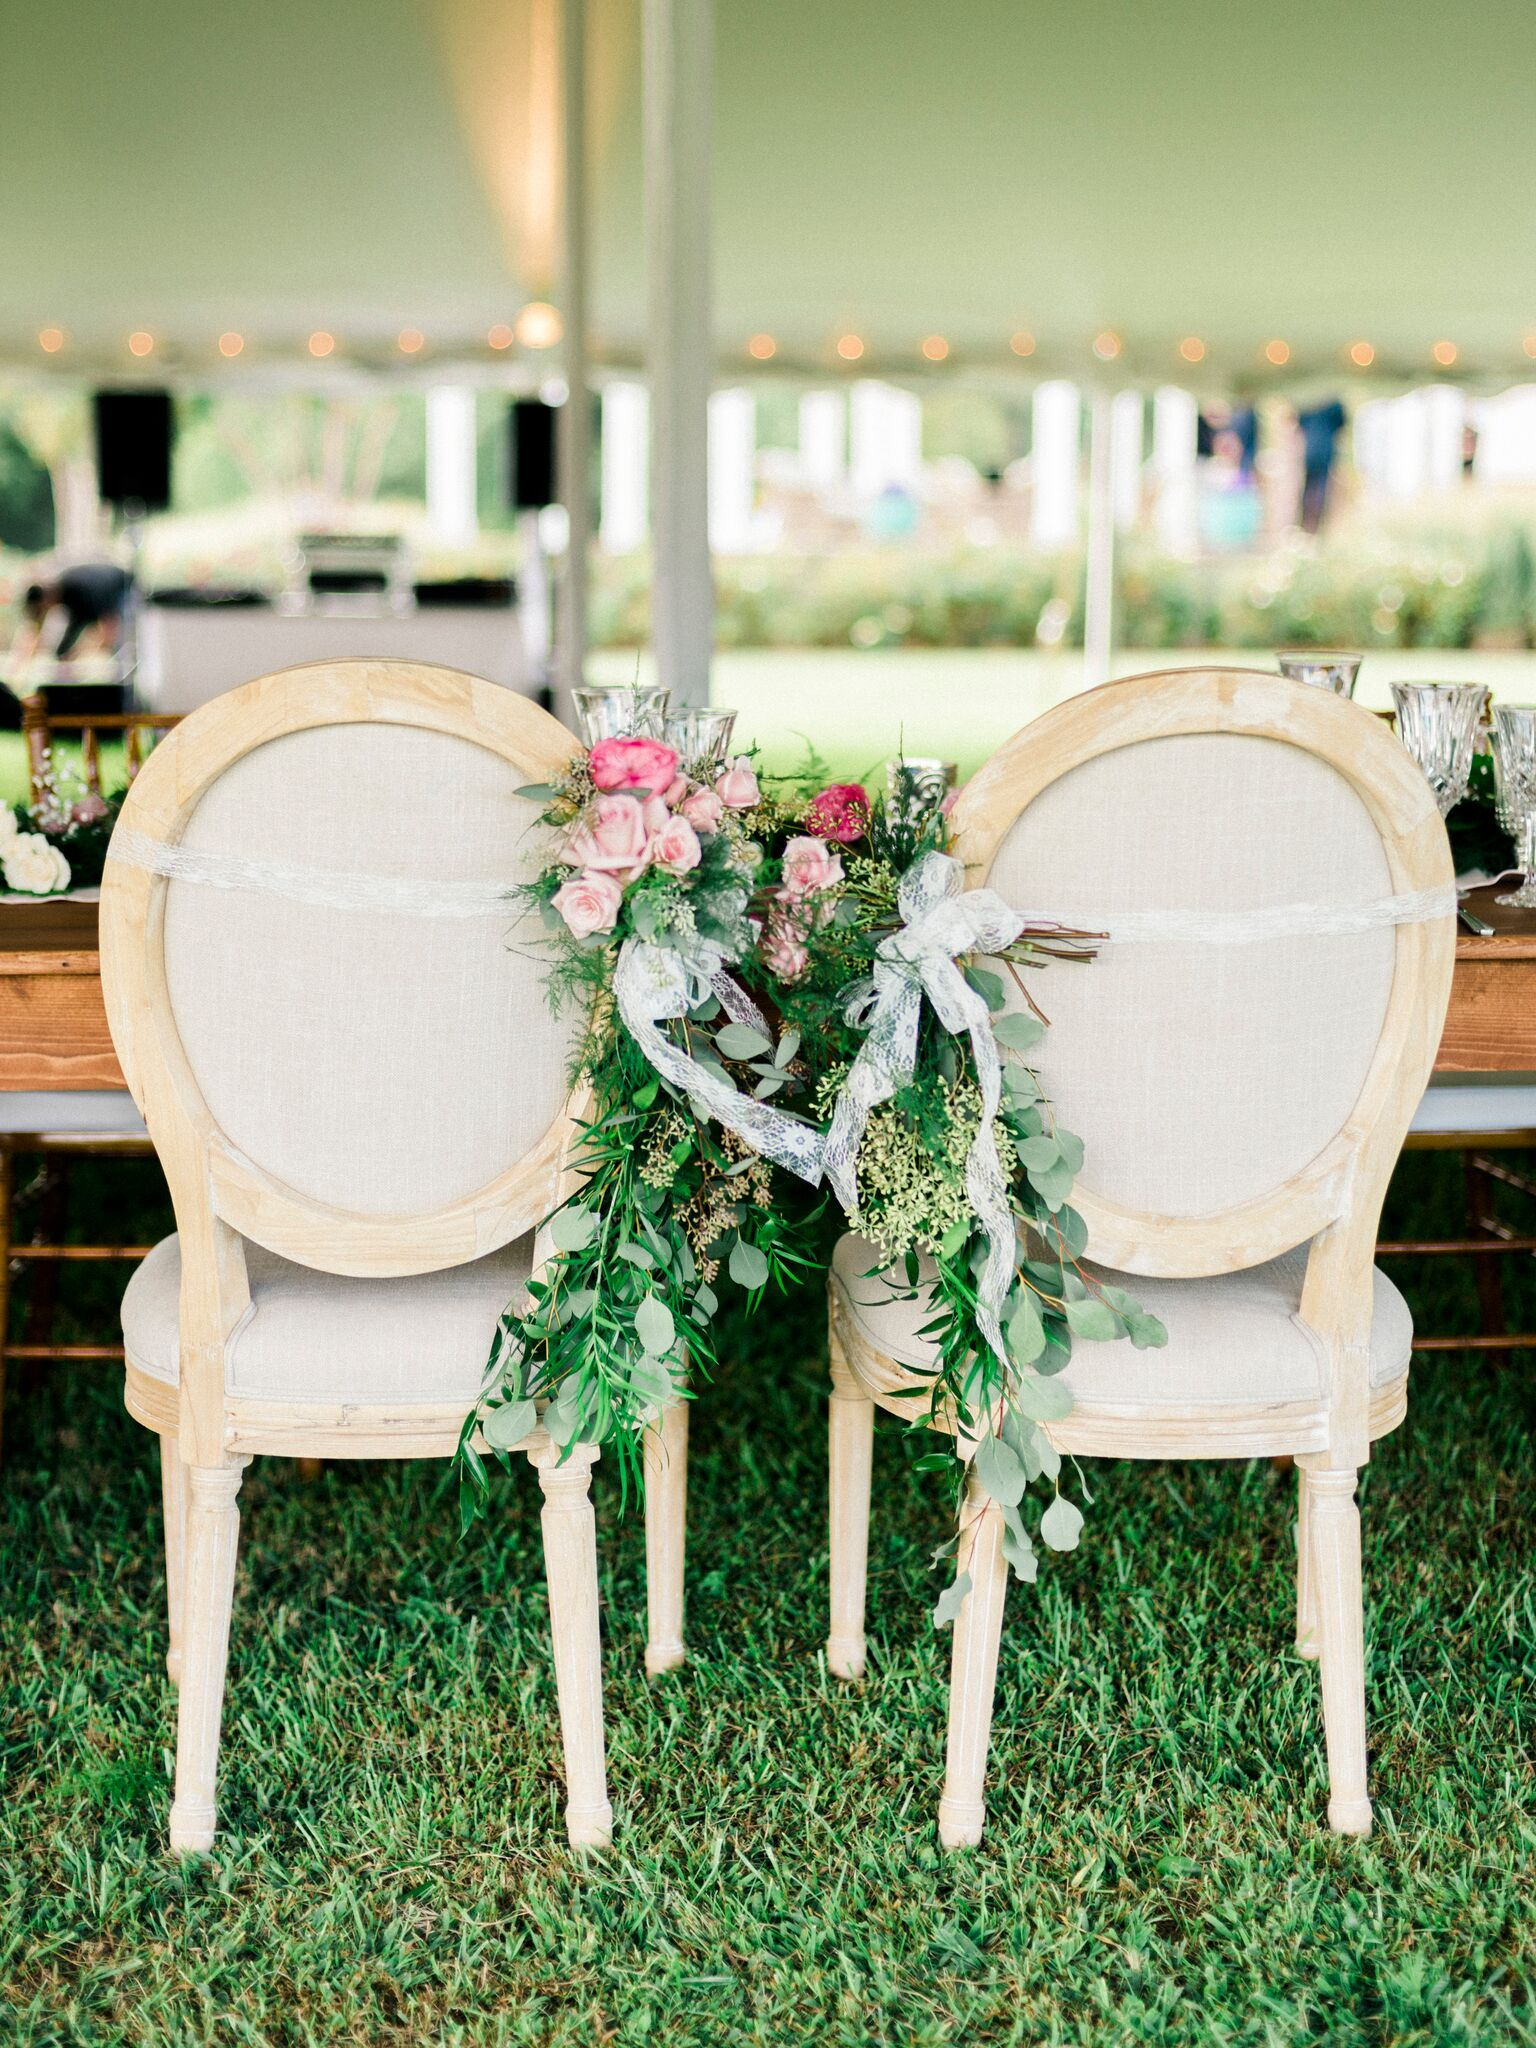 bent wood chair danish kneeling 11 popular wedding styles - weddingwire